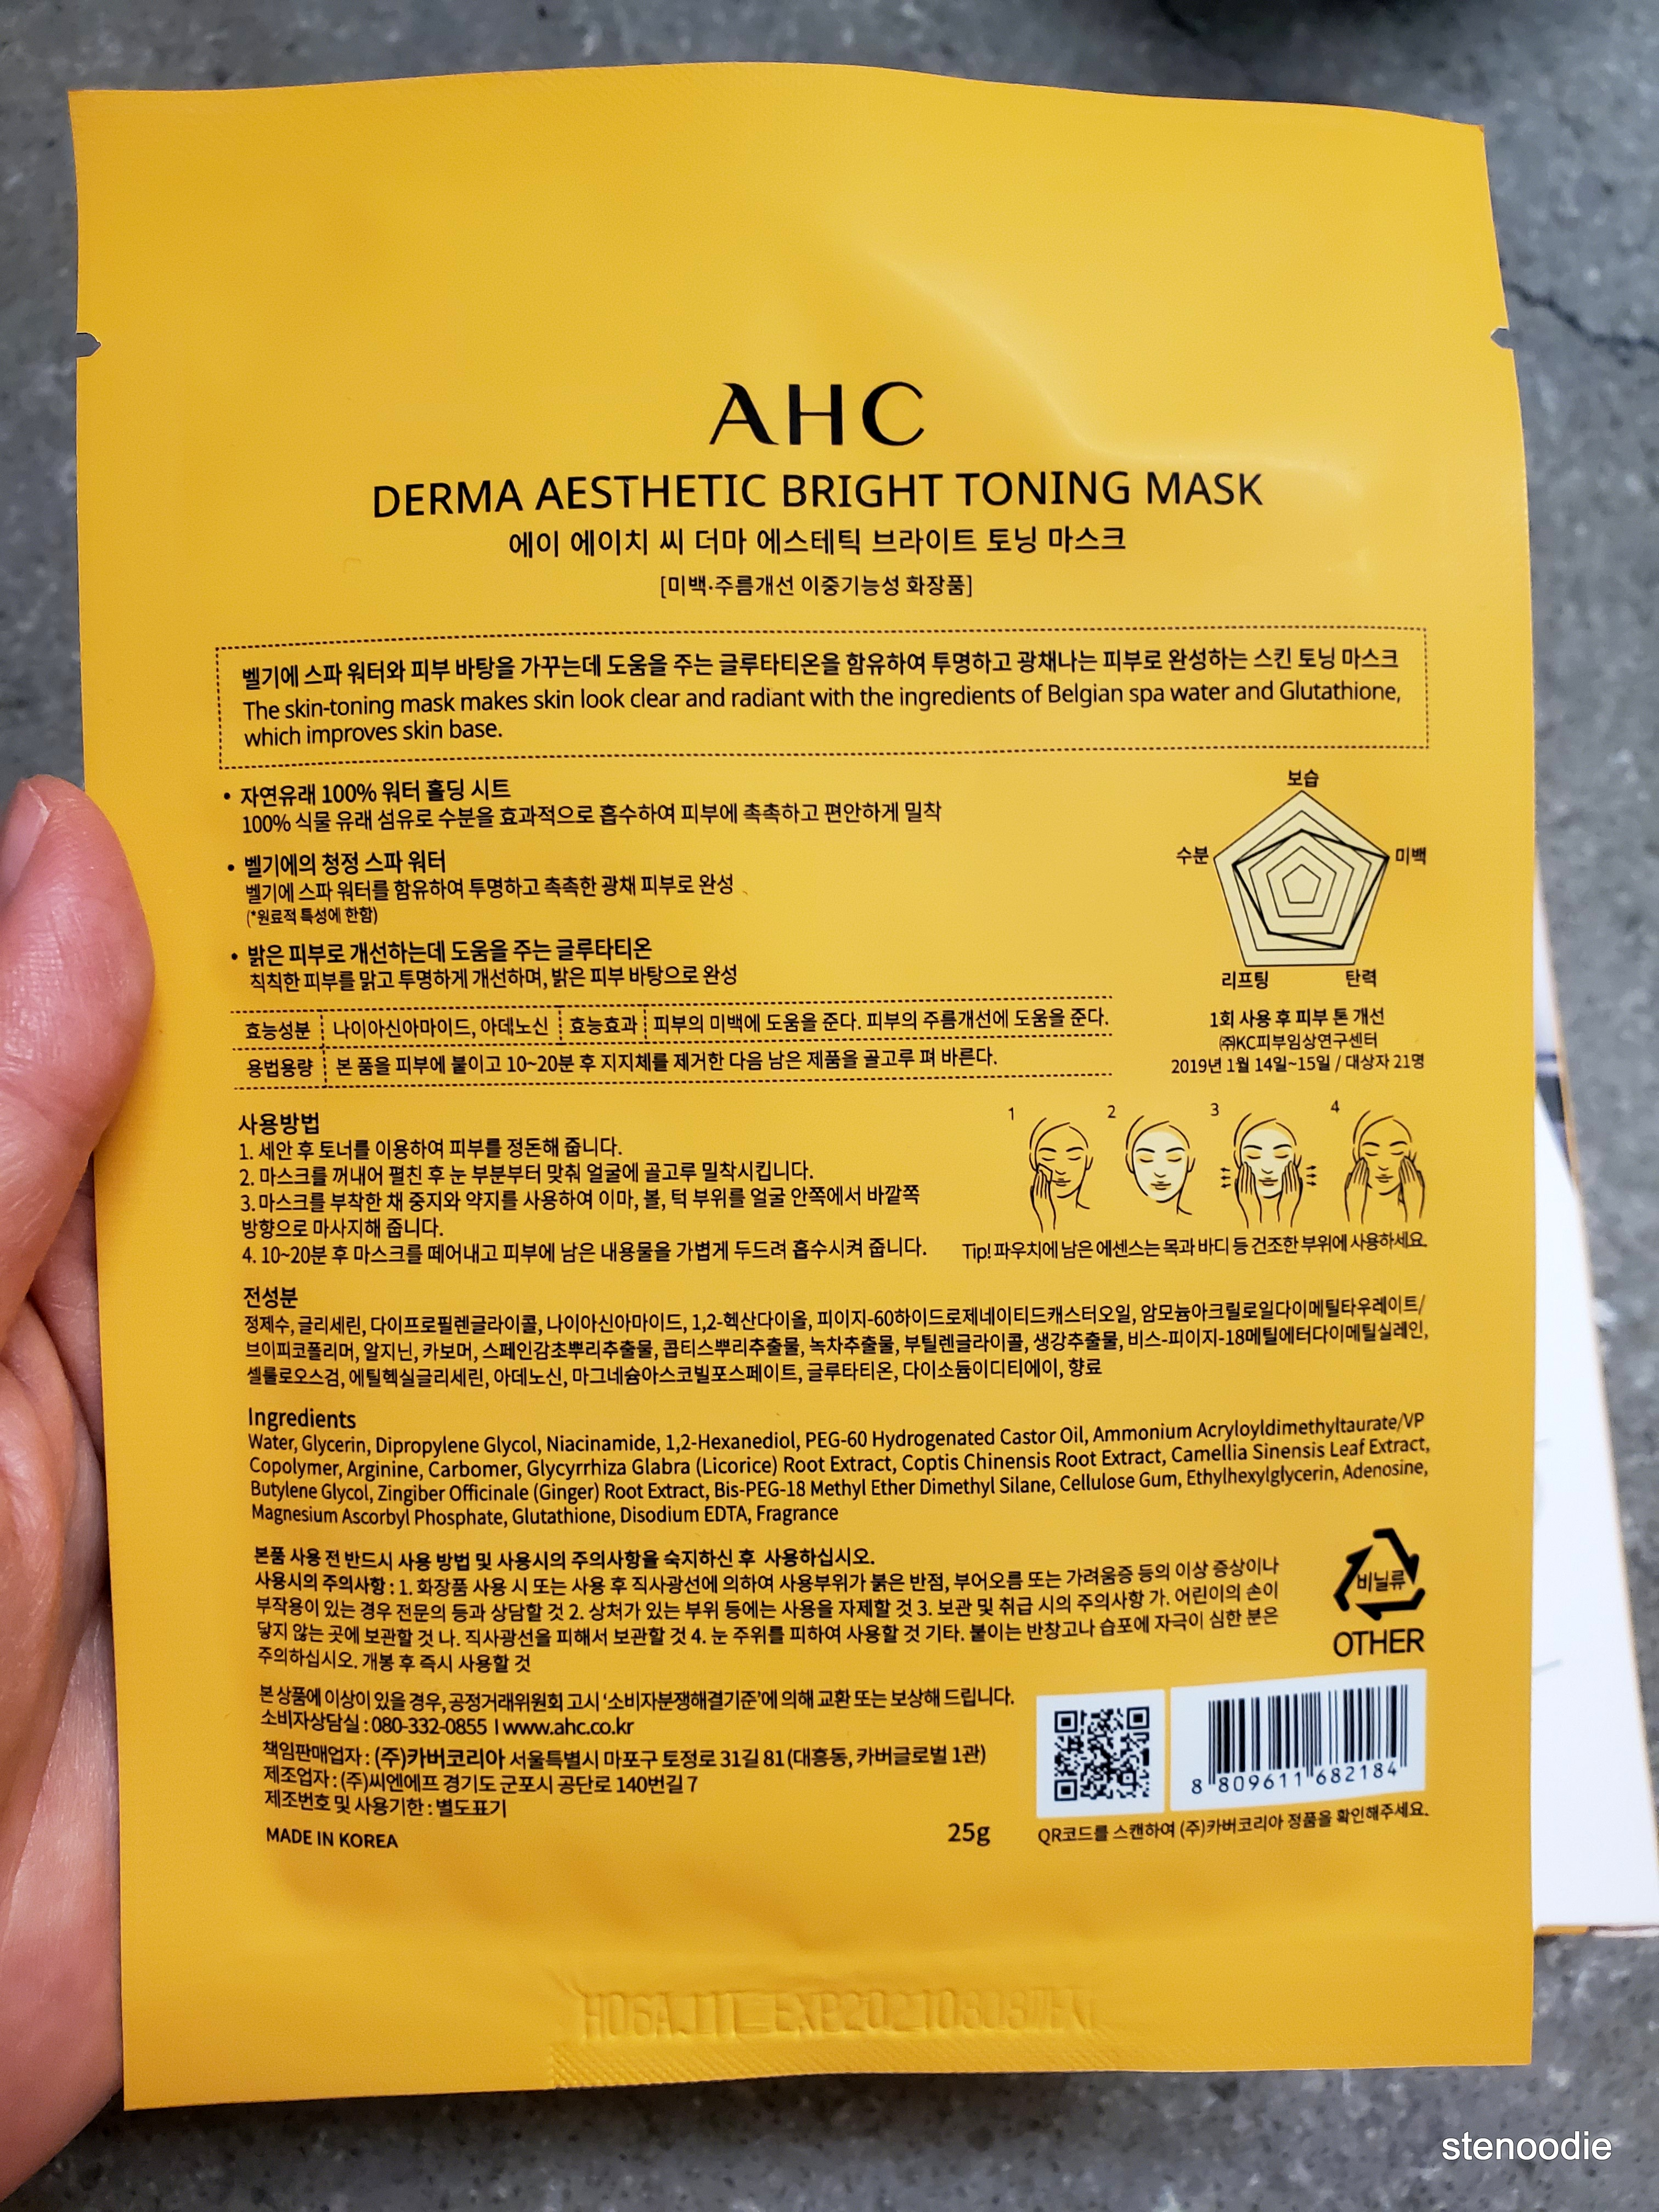 AHC Derma Aesthetic Bright Toning Mask pouch